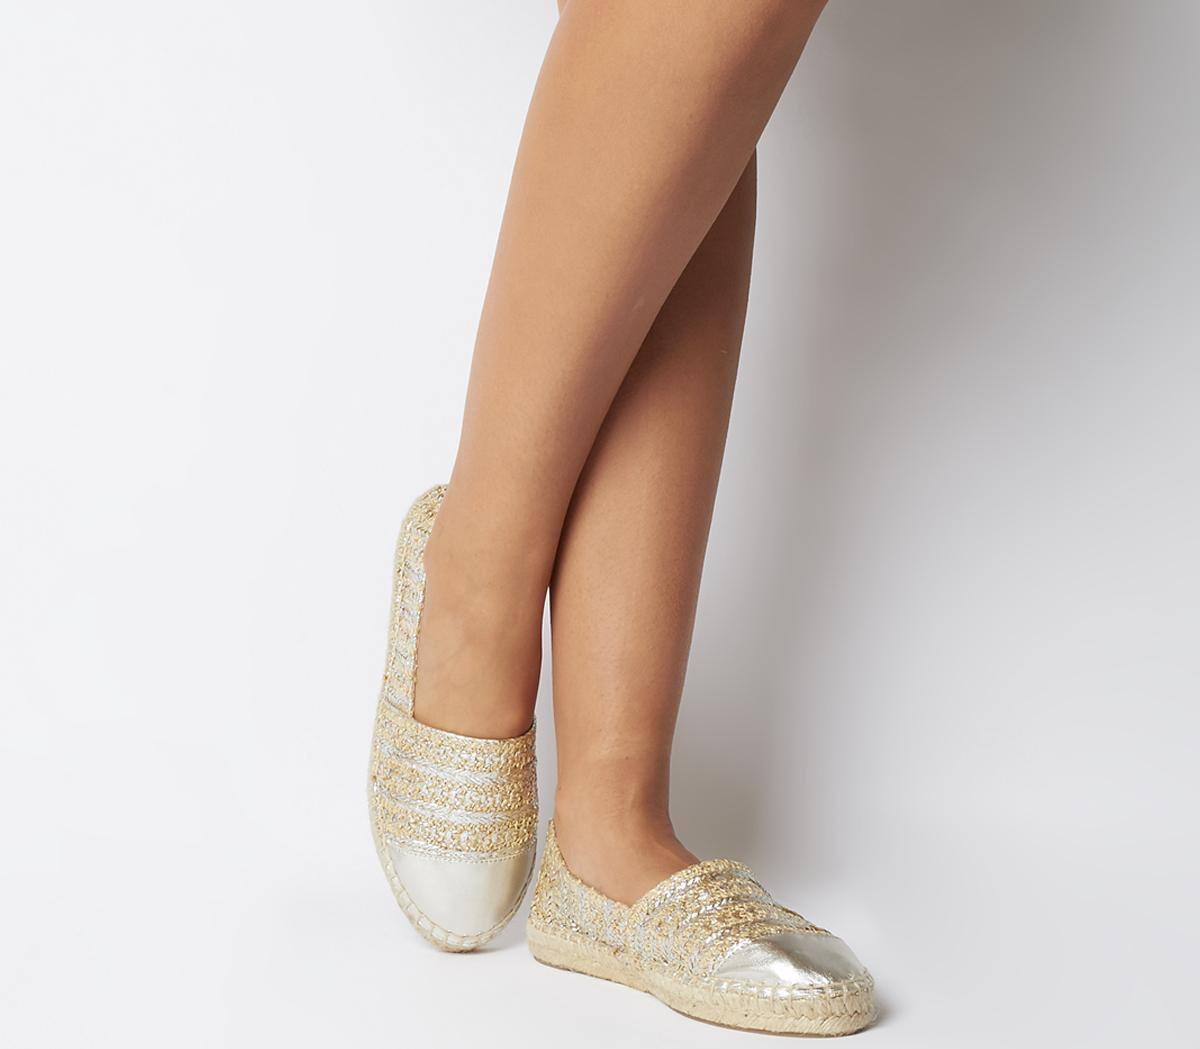 Lucky Espadrille With Toe Cap Flats